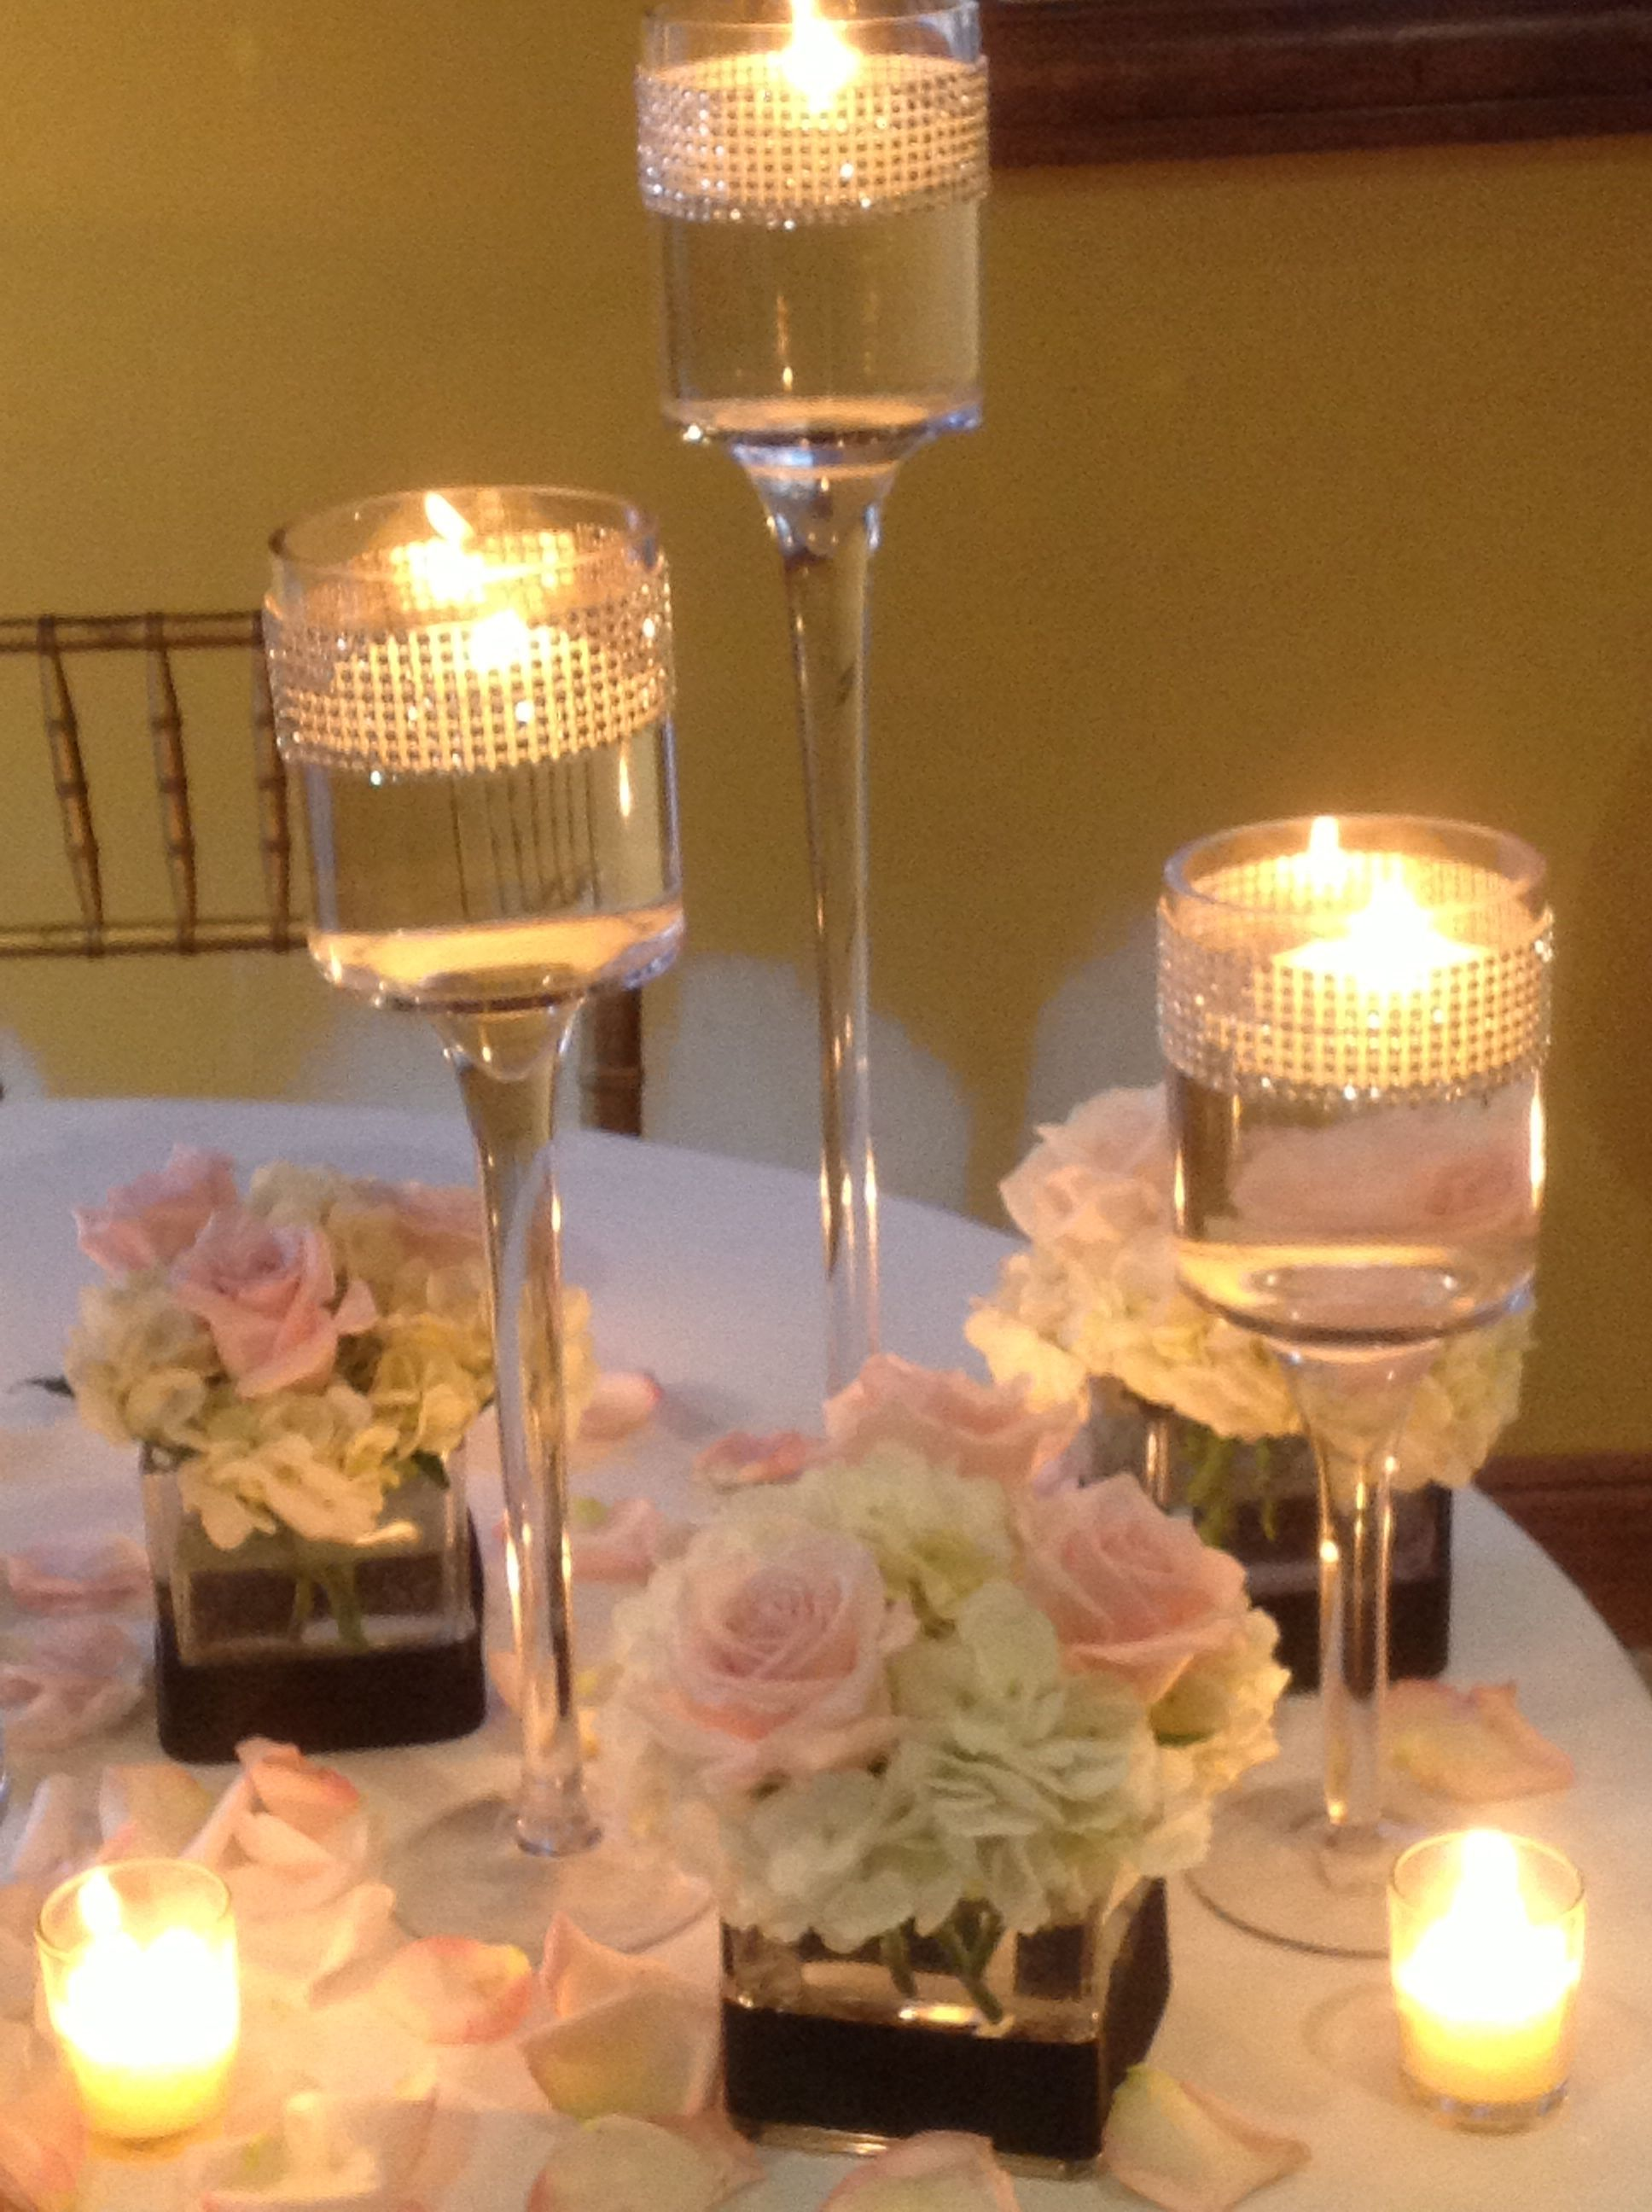 Wedding Centerpiece Of Cube Trio White Hydrangea And Pink Roses With 3 Pedestals Floating Candles Pall Surrounded By Rose Petals Votive